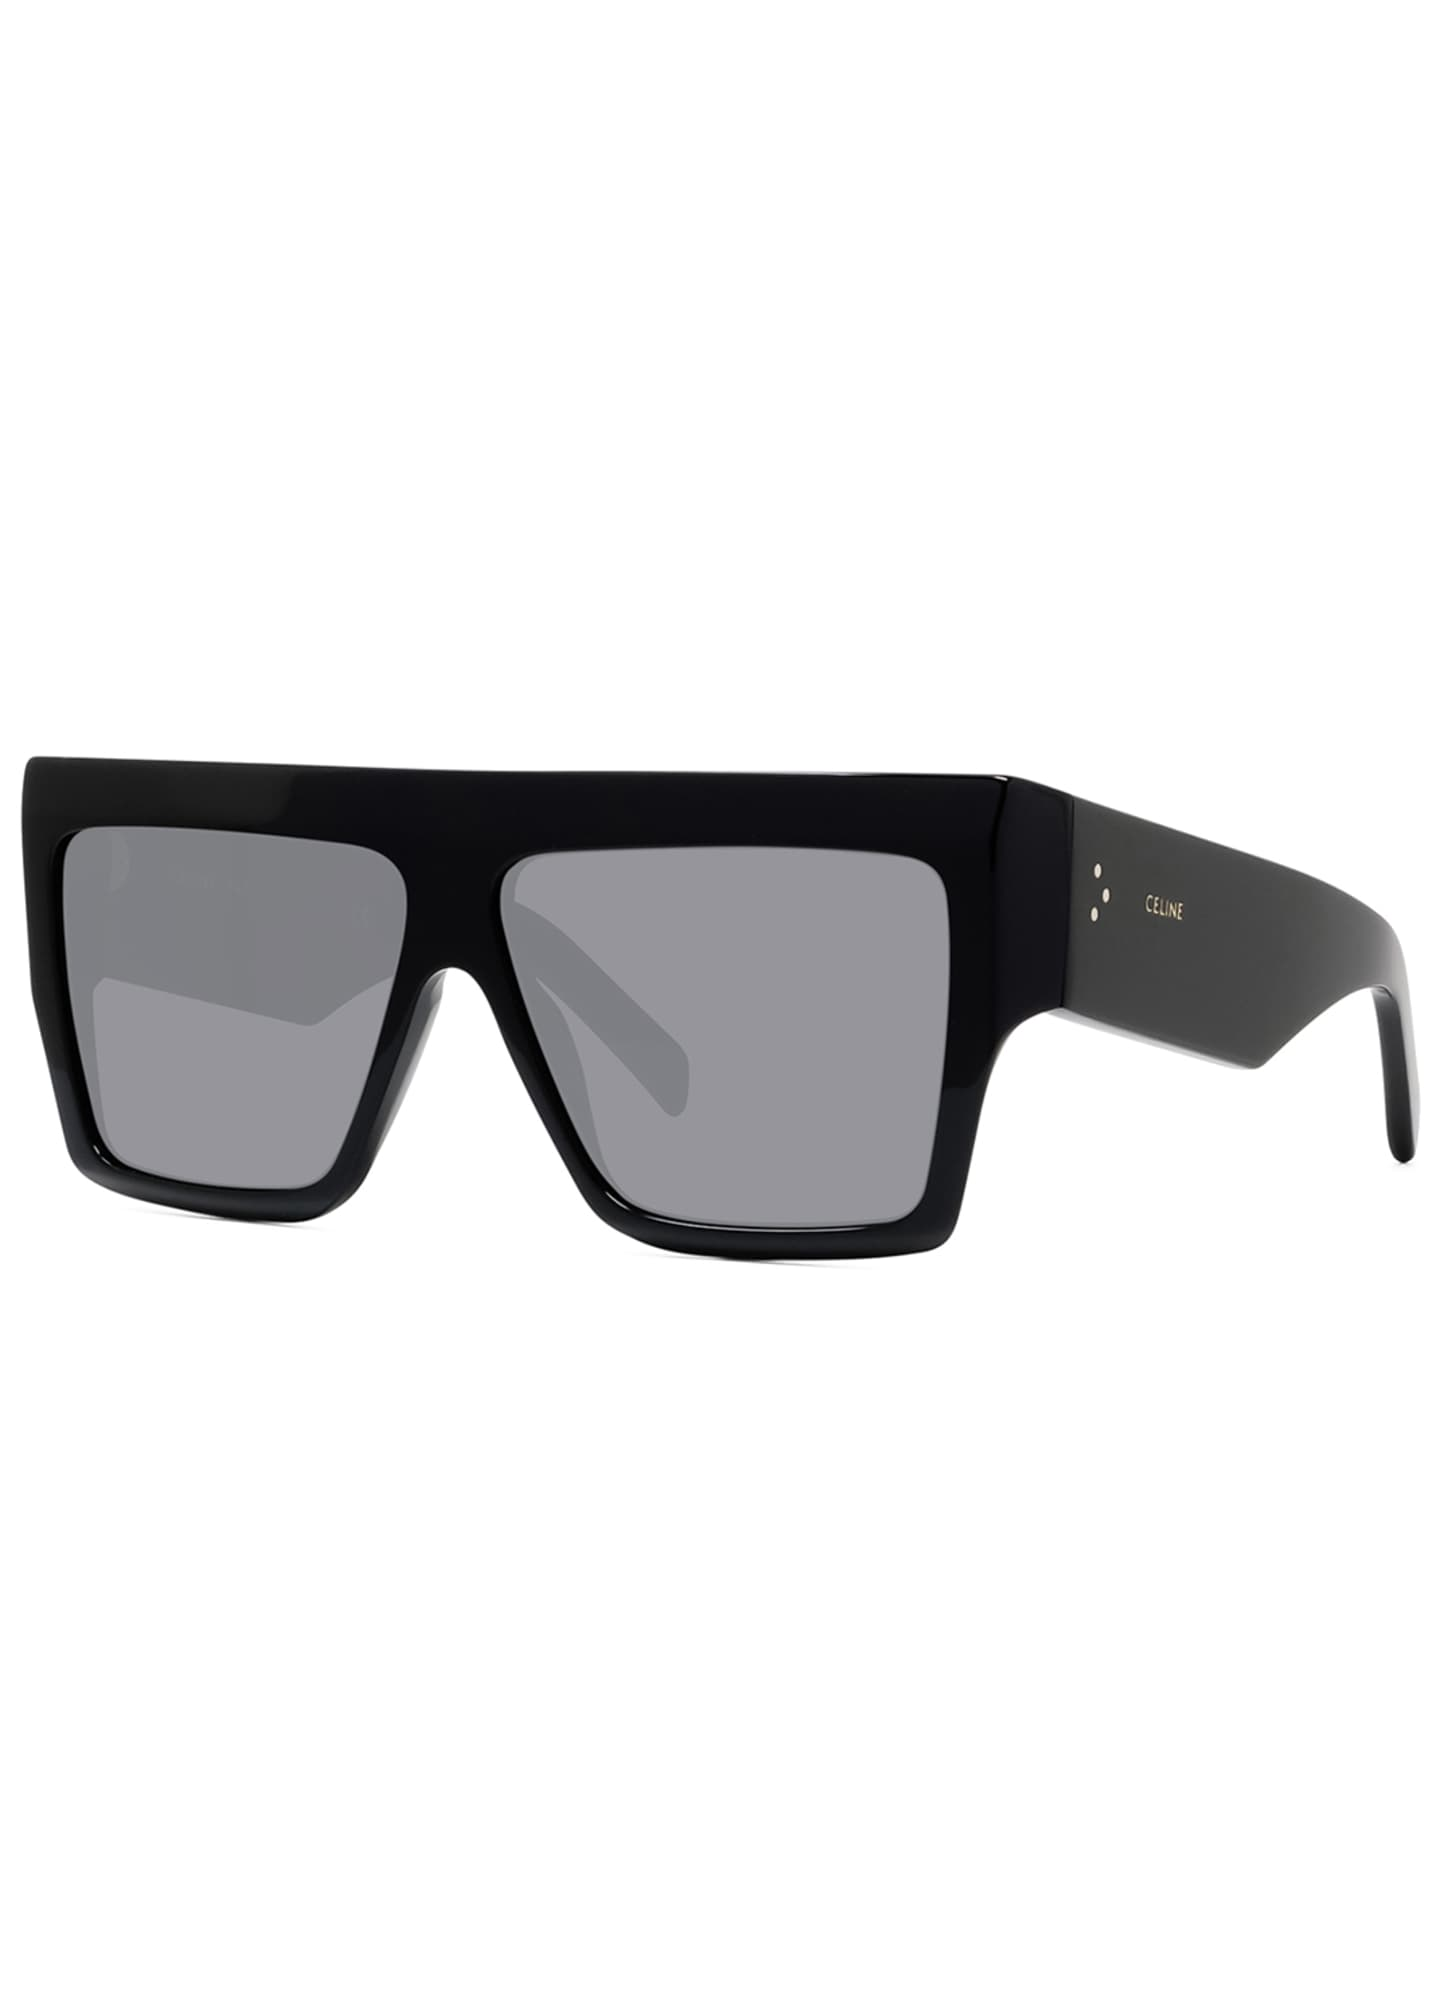 Image 1 of 2: Men's Chunky Rectangle Solid Acetate Sunglasses